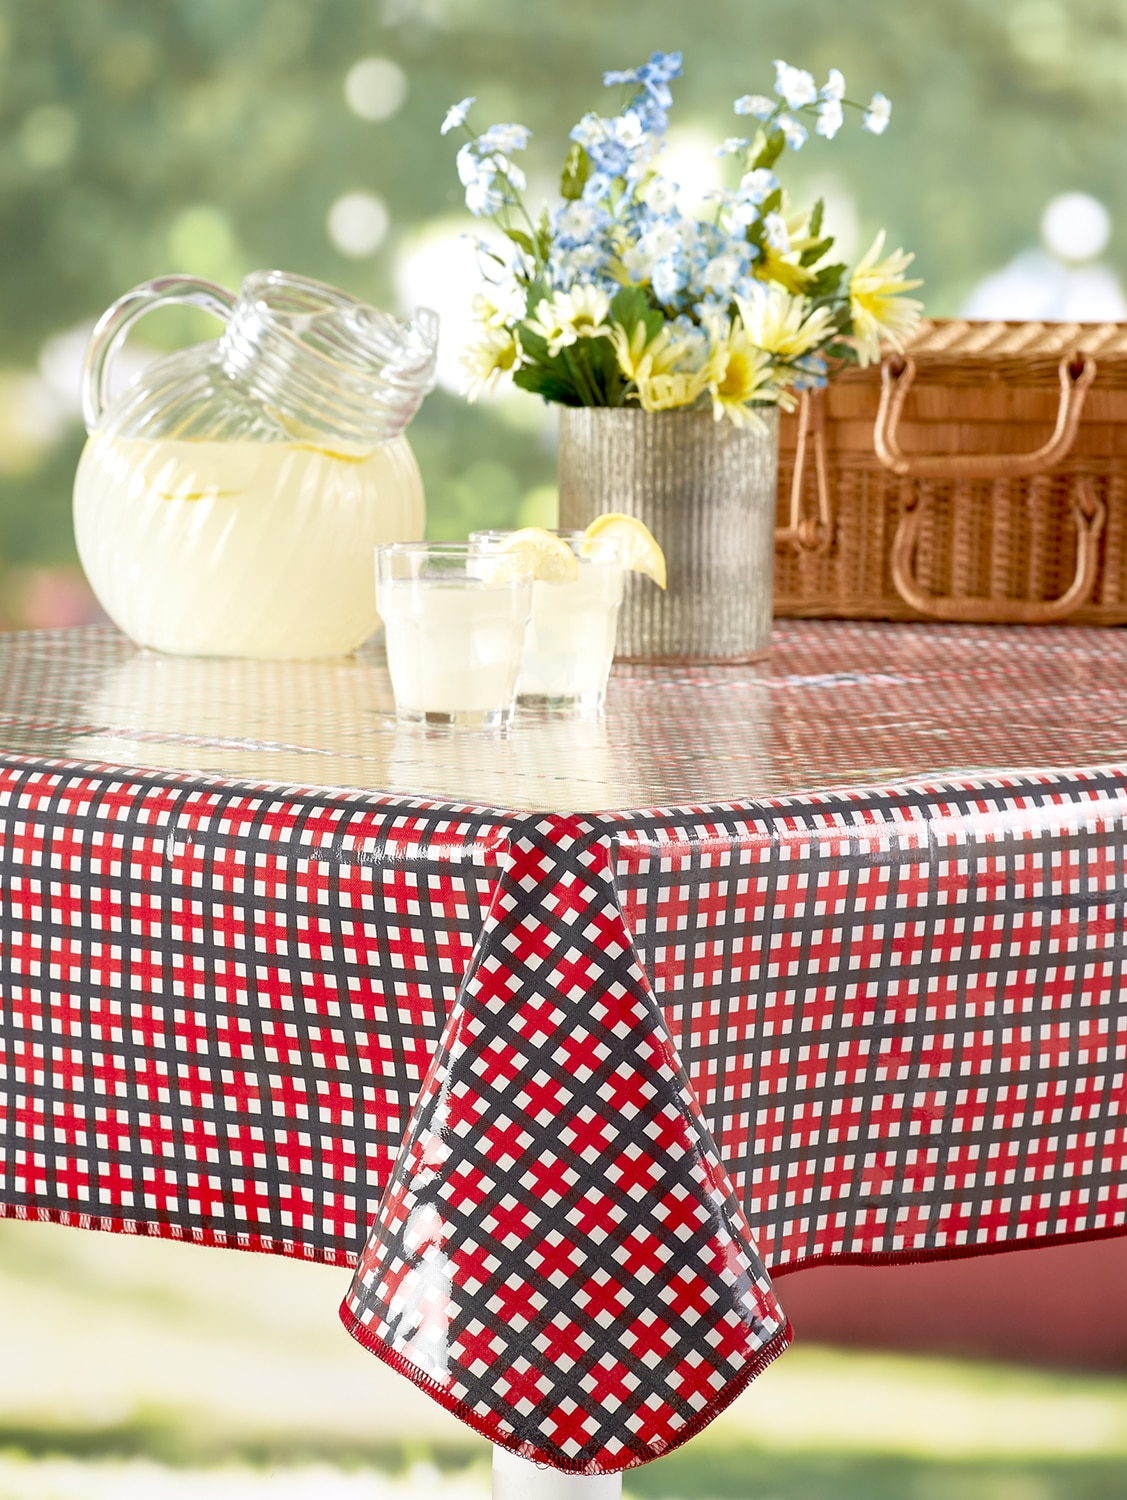 Retro Picnic Garden Check w//Flowers Disposable Tablecover 84x54 HAPPY DEALS ~ Camping Tablecloth